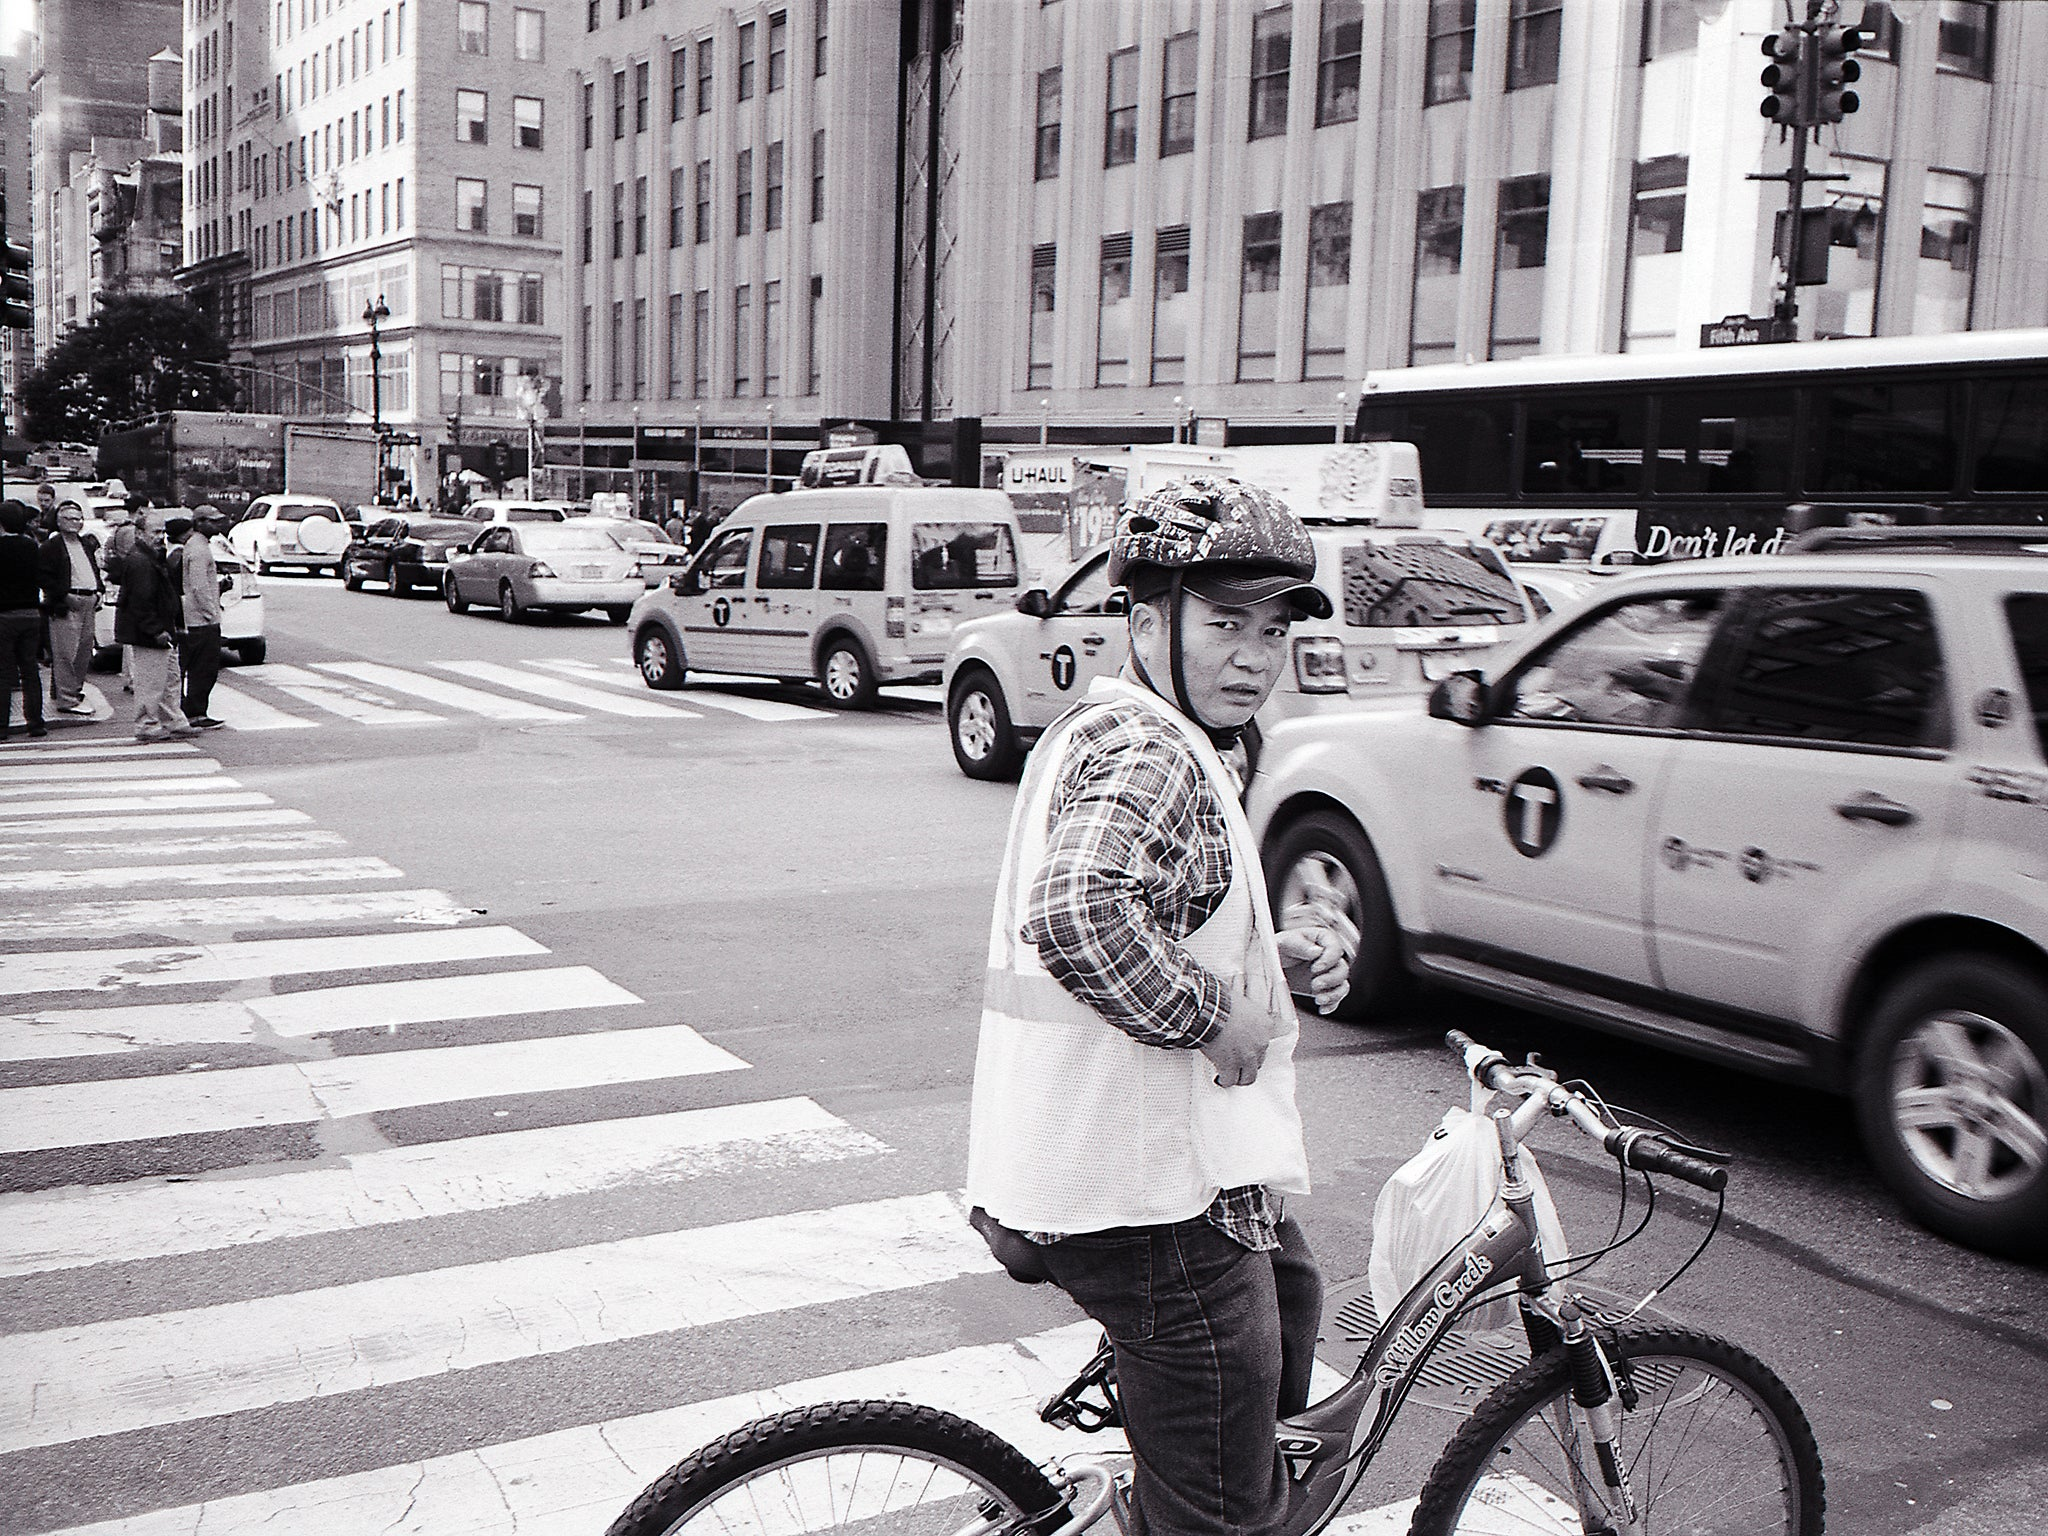 Deliveryman on two wheels, New York.